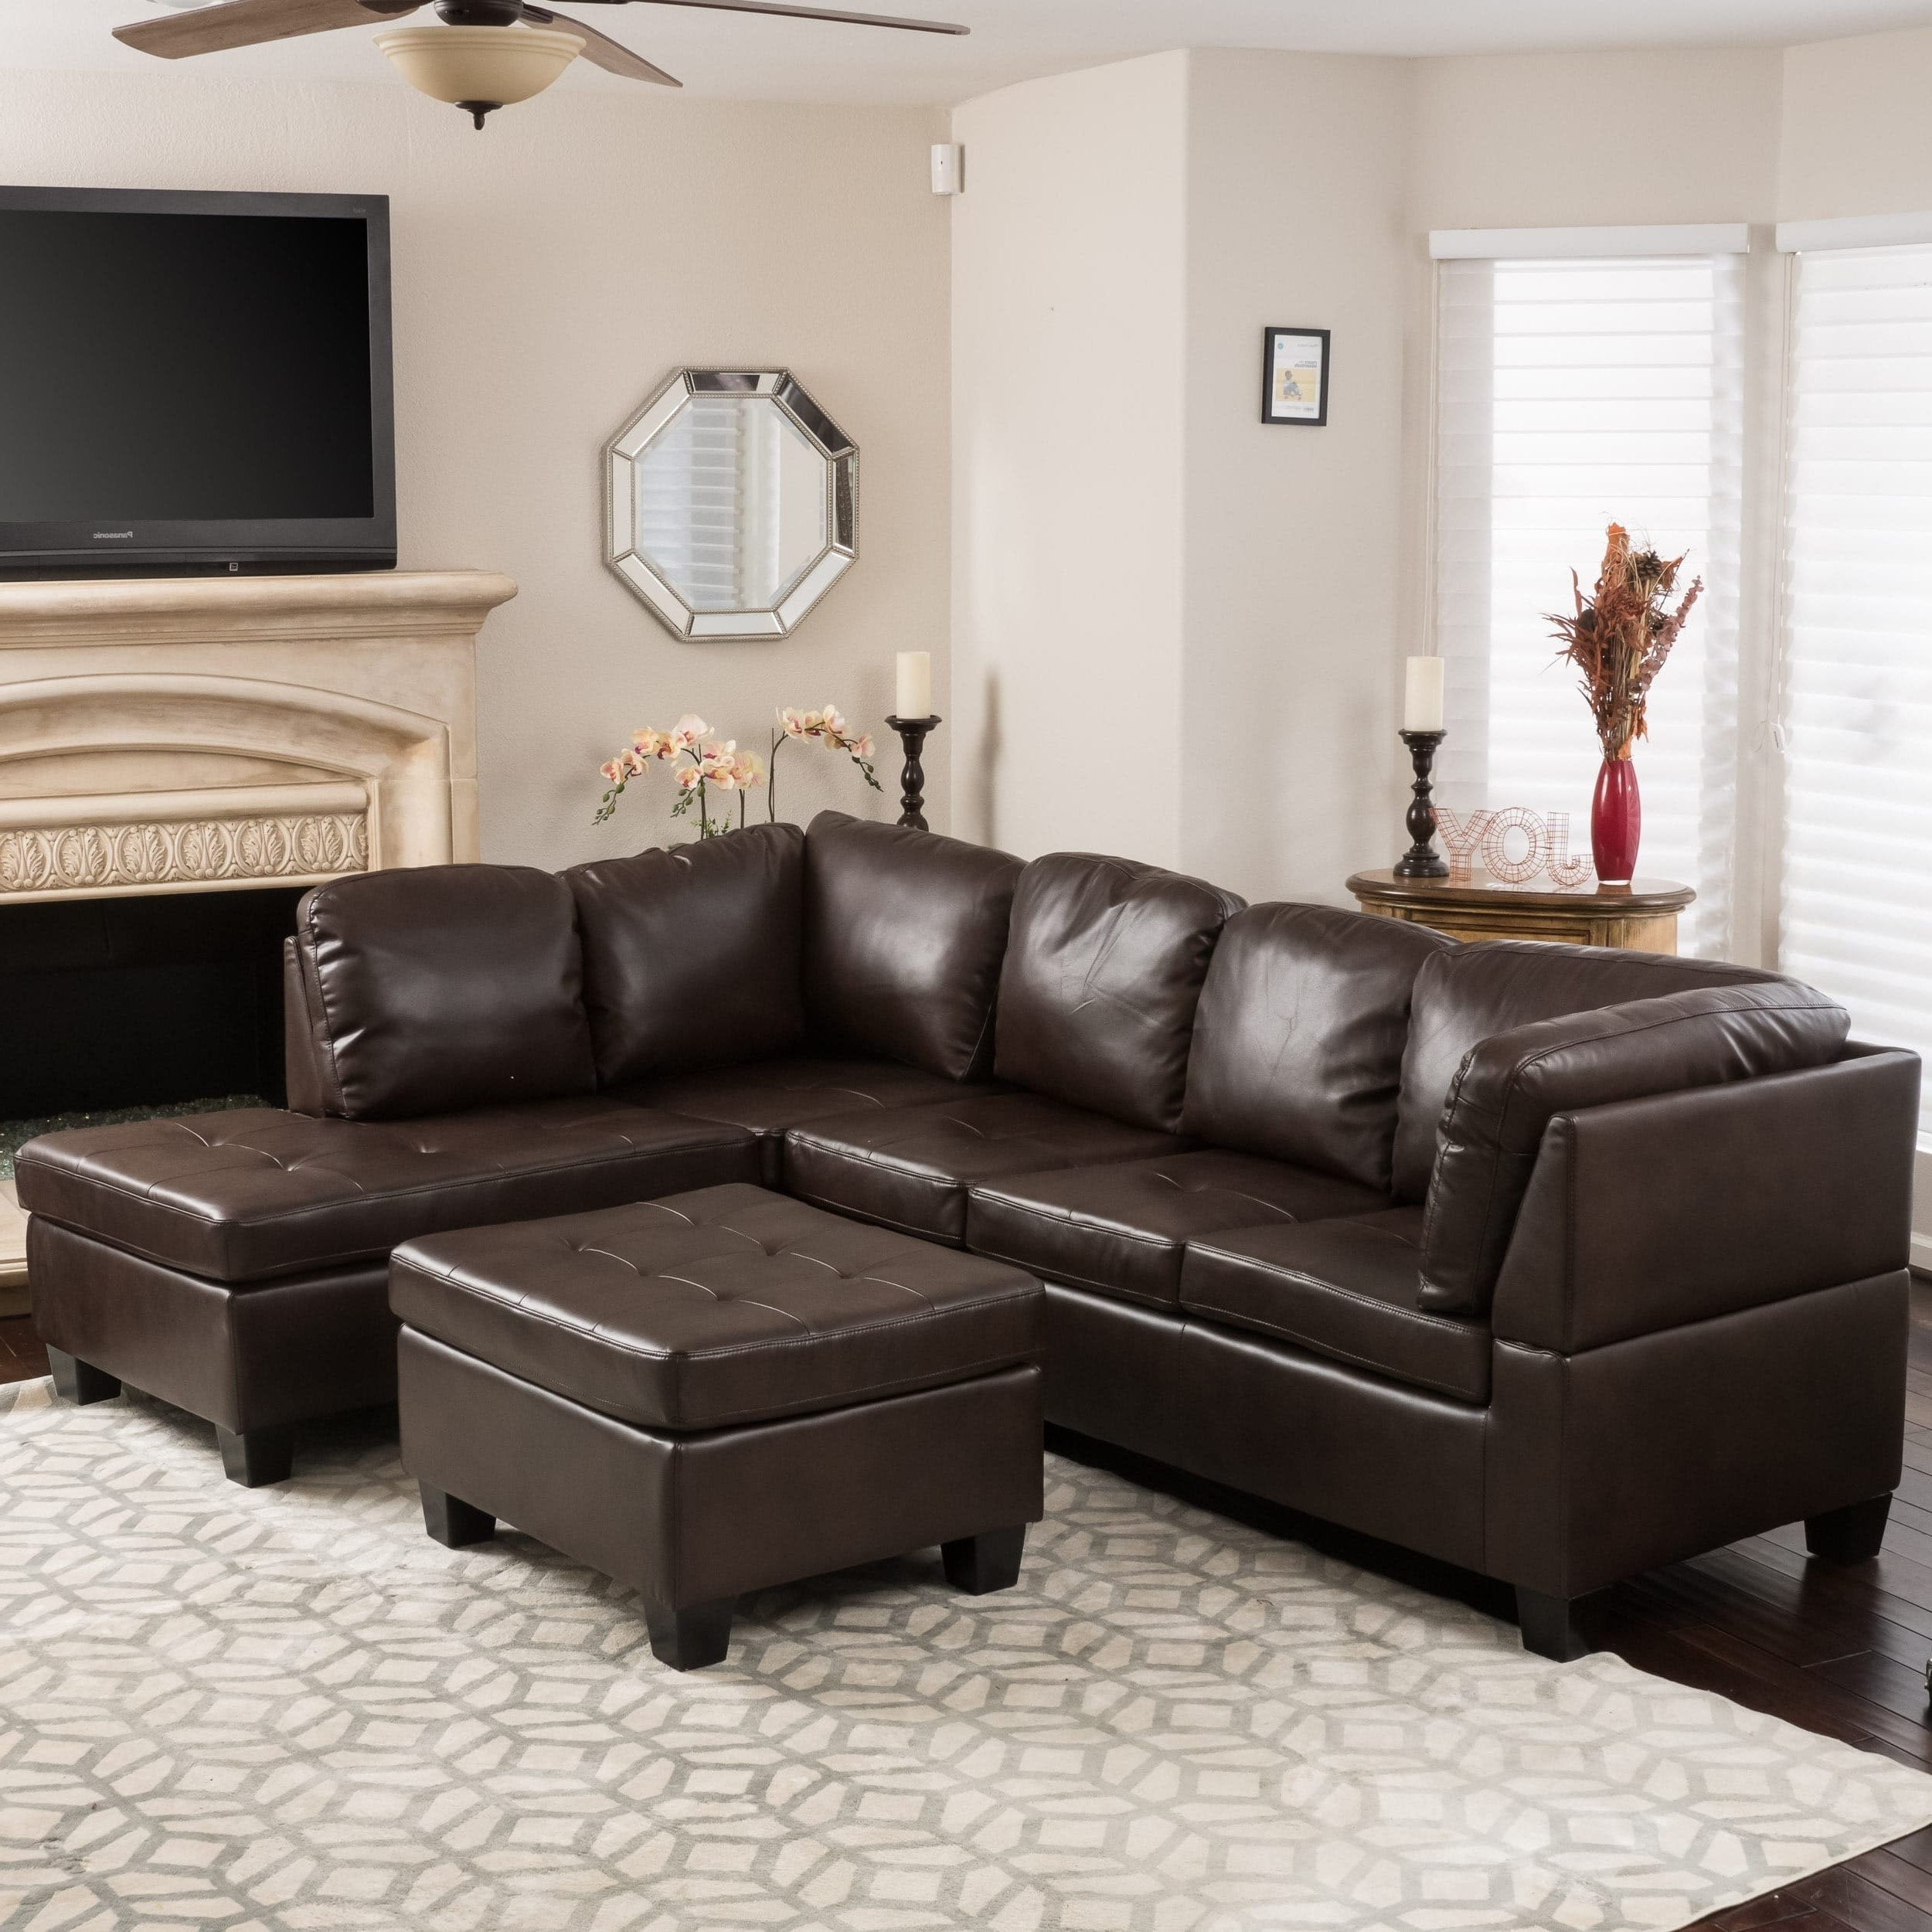 Canterbury 3 Piece Pu Leather Sectional Sofa Setchristopher For Latest Canterbury Leather Sofas (View 9 of 15)